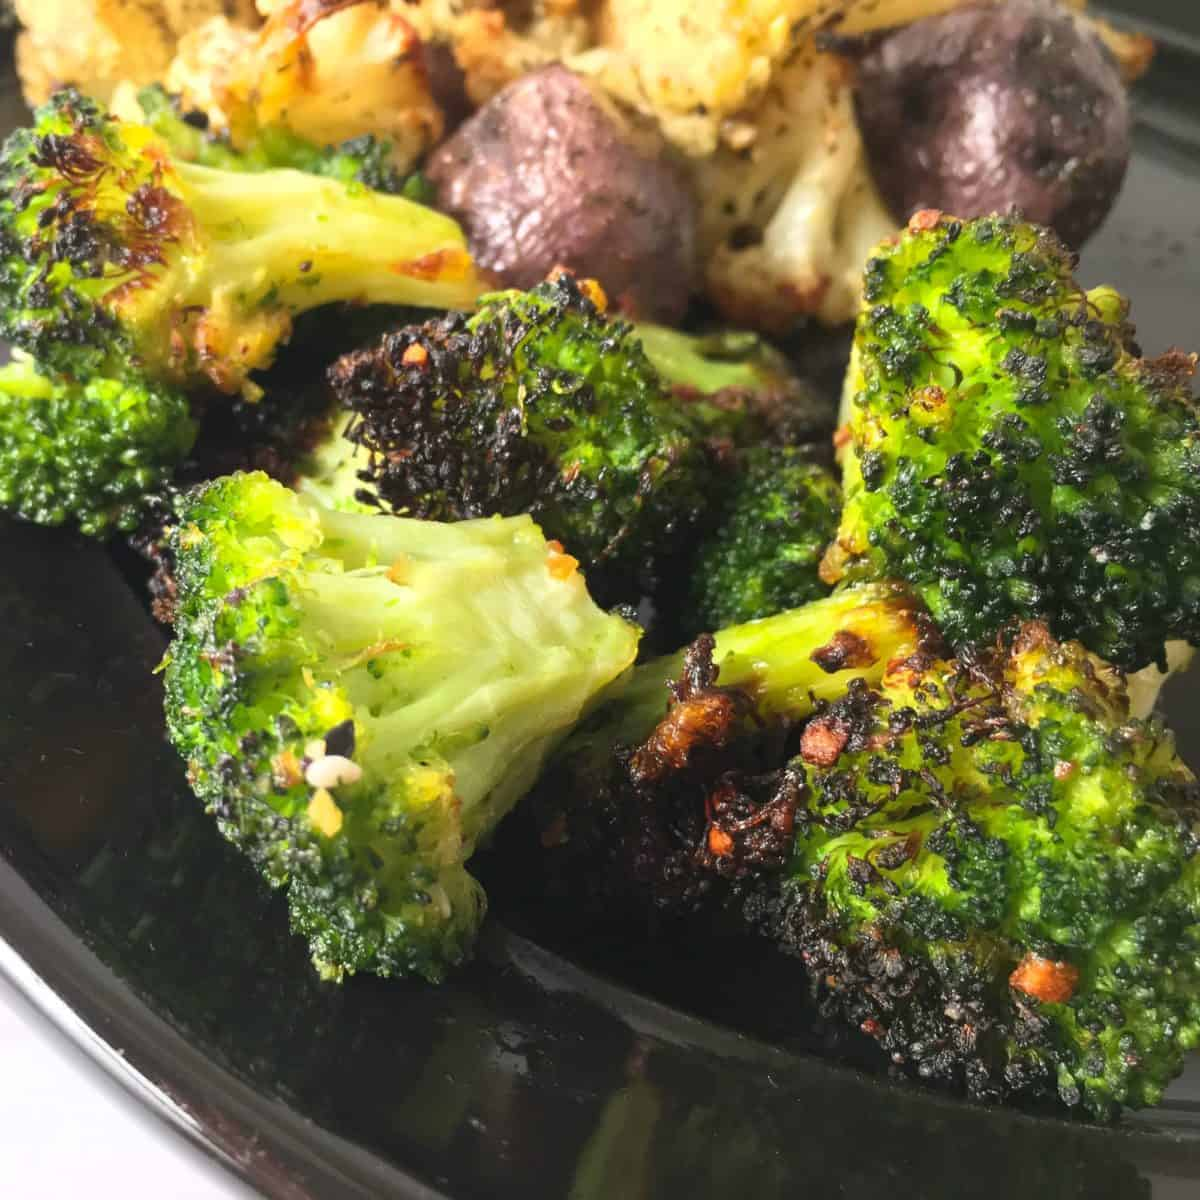 Air fryer broccoli square image